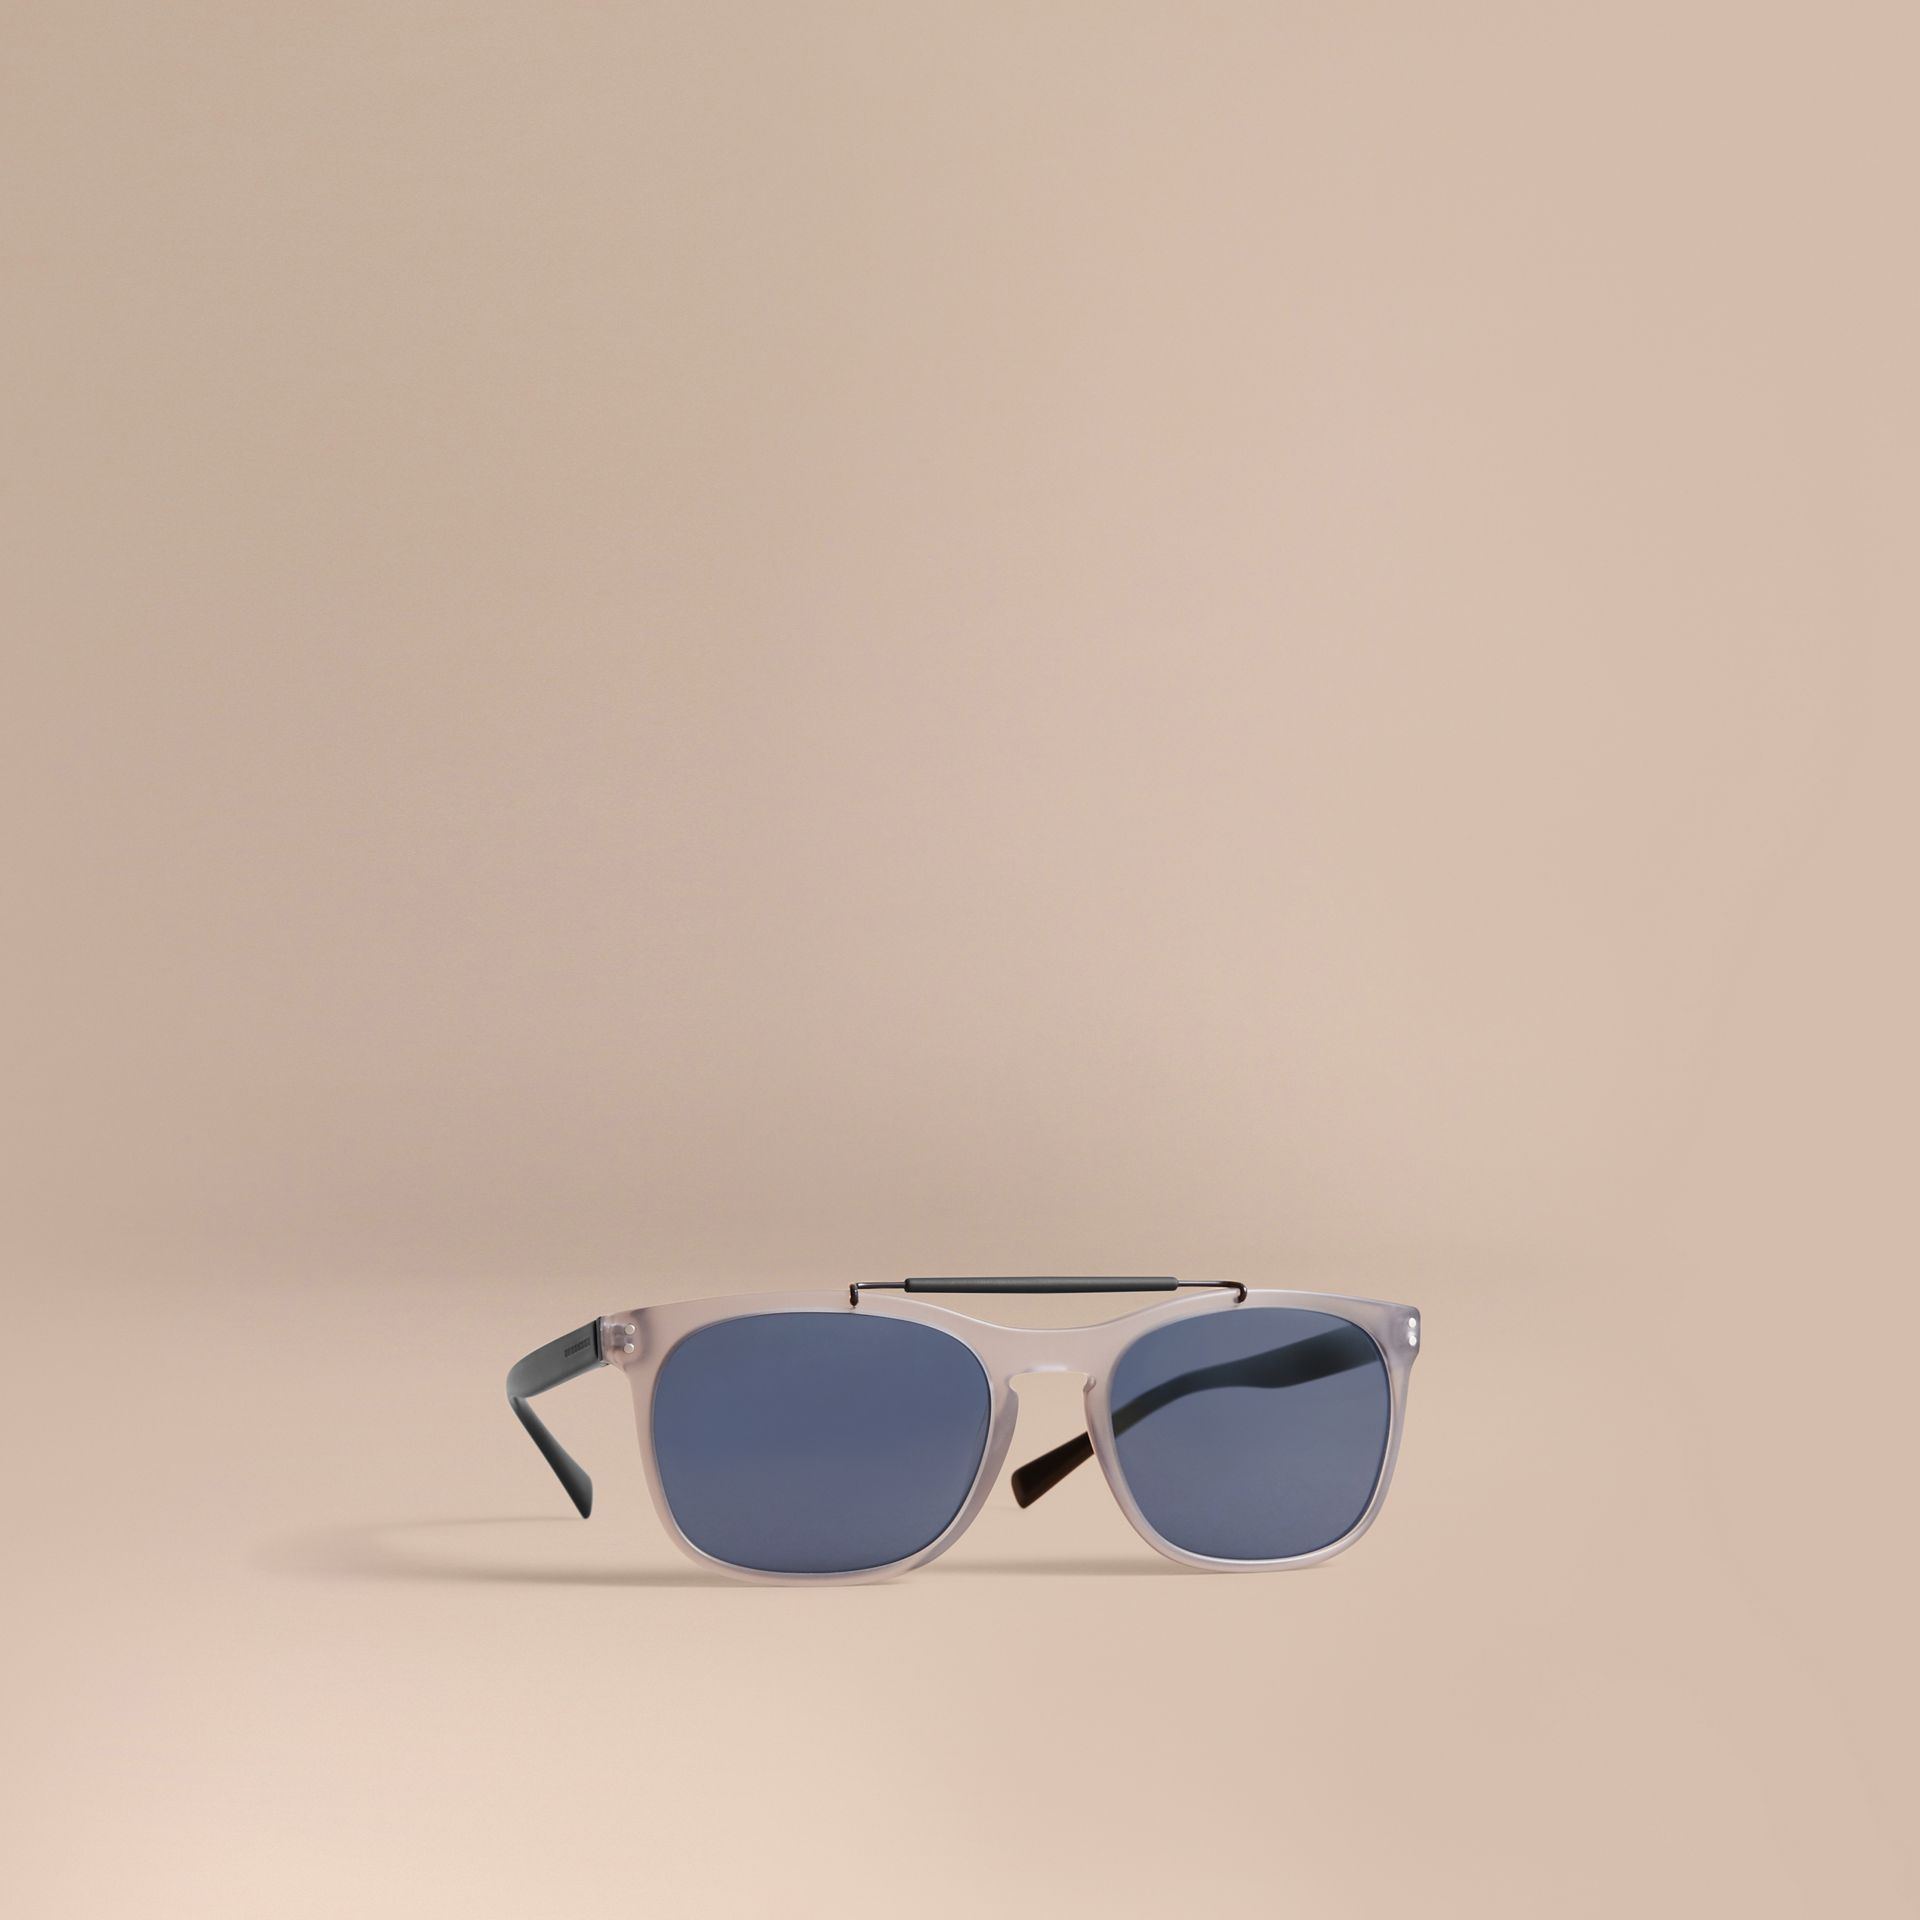 Top Bar Square Frame Sunglasses in Mineral Grey - Men | Burberry Singapore - gallery image 1